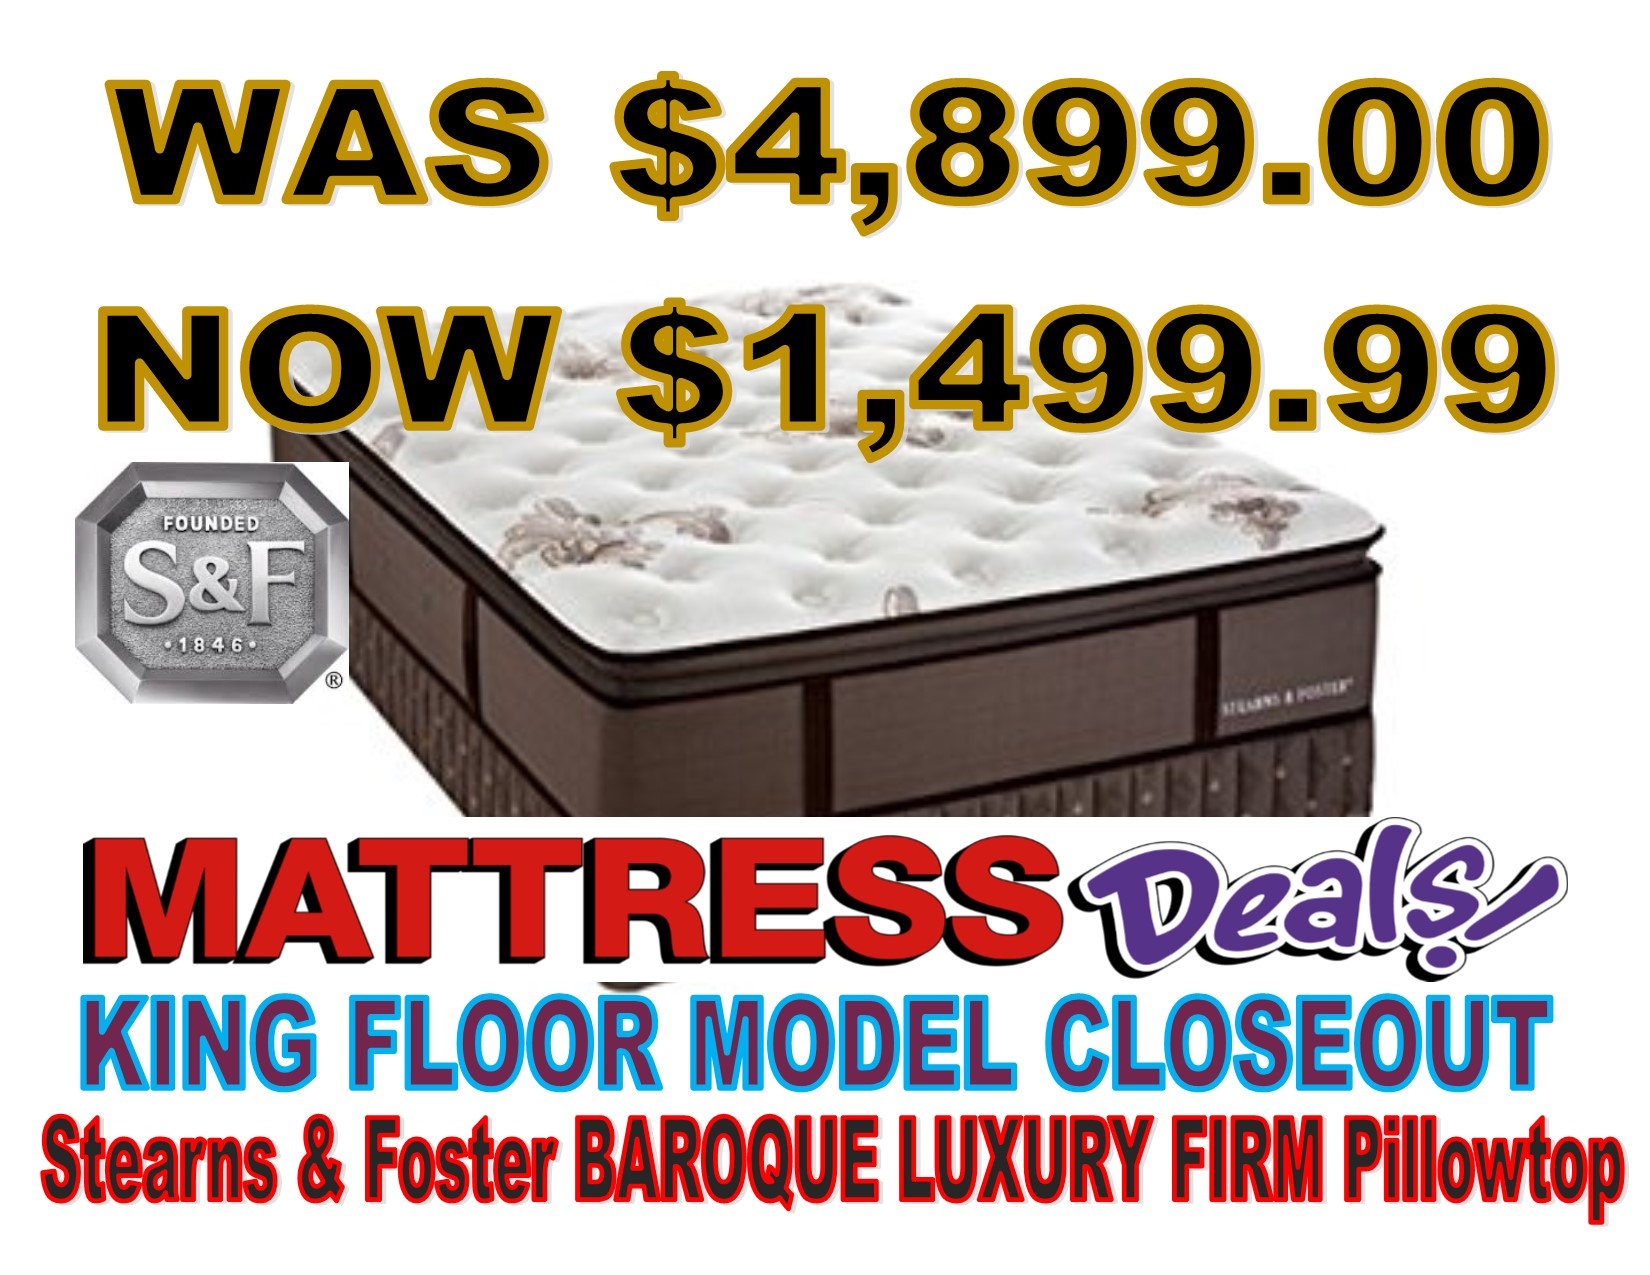 Mattress Deals image 52